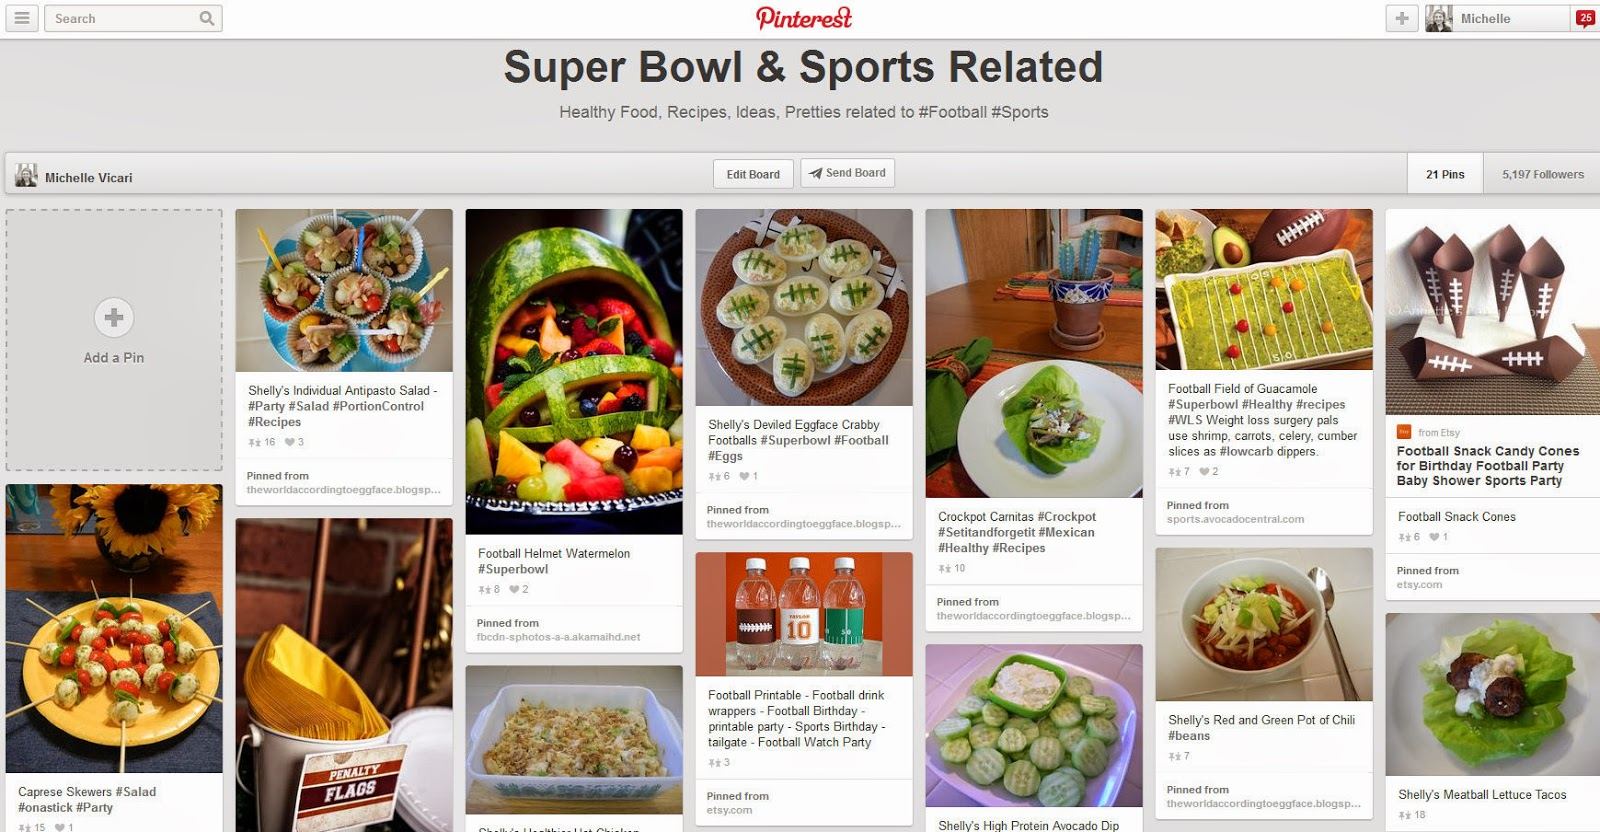 http://www.pinterest.com/eggface/super-bowl-sports-related/